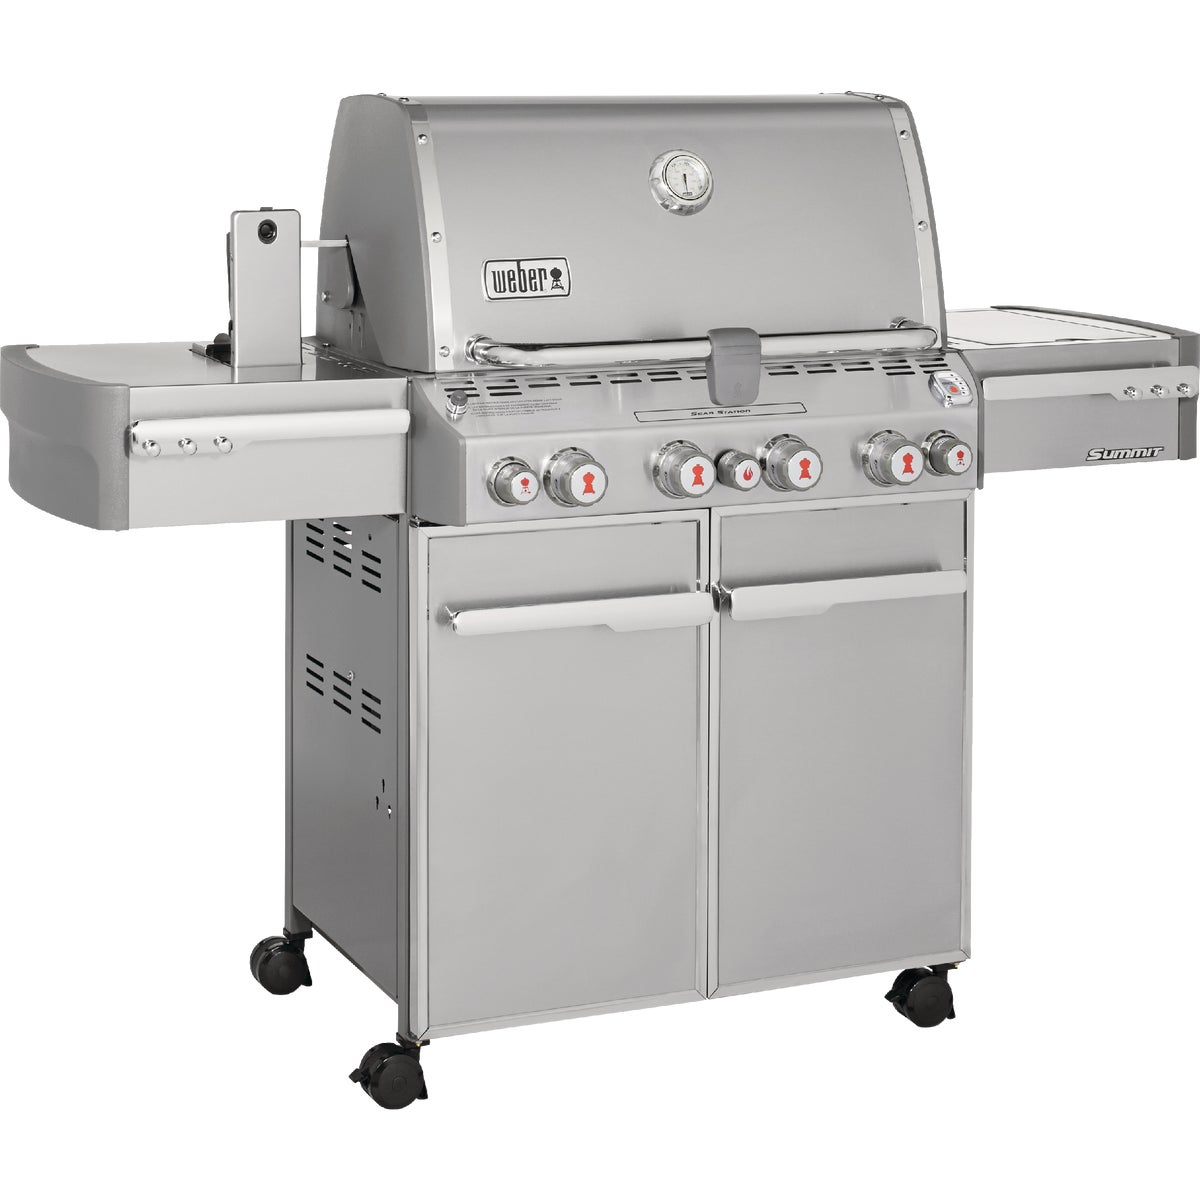 S470 SUMMIT LP GRILL - 7170001 by Weber